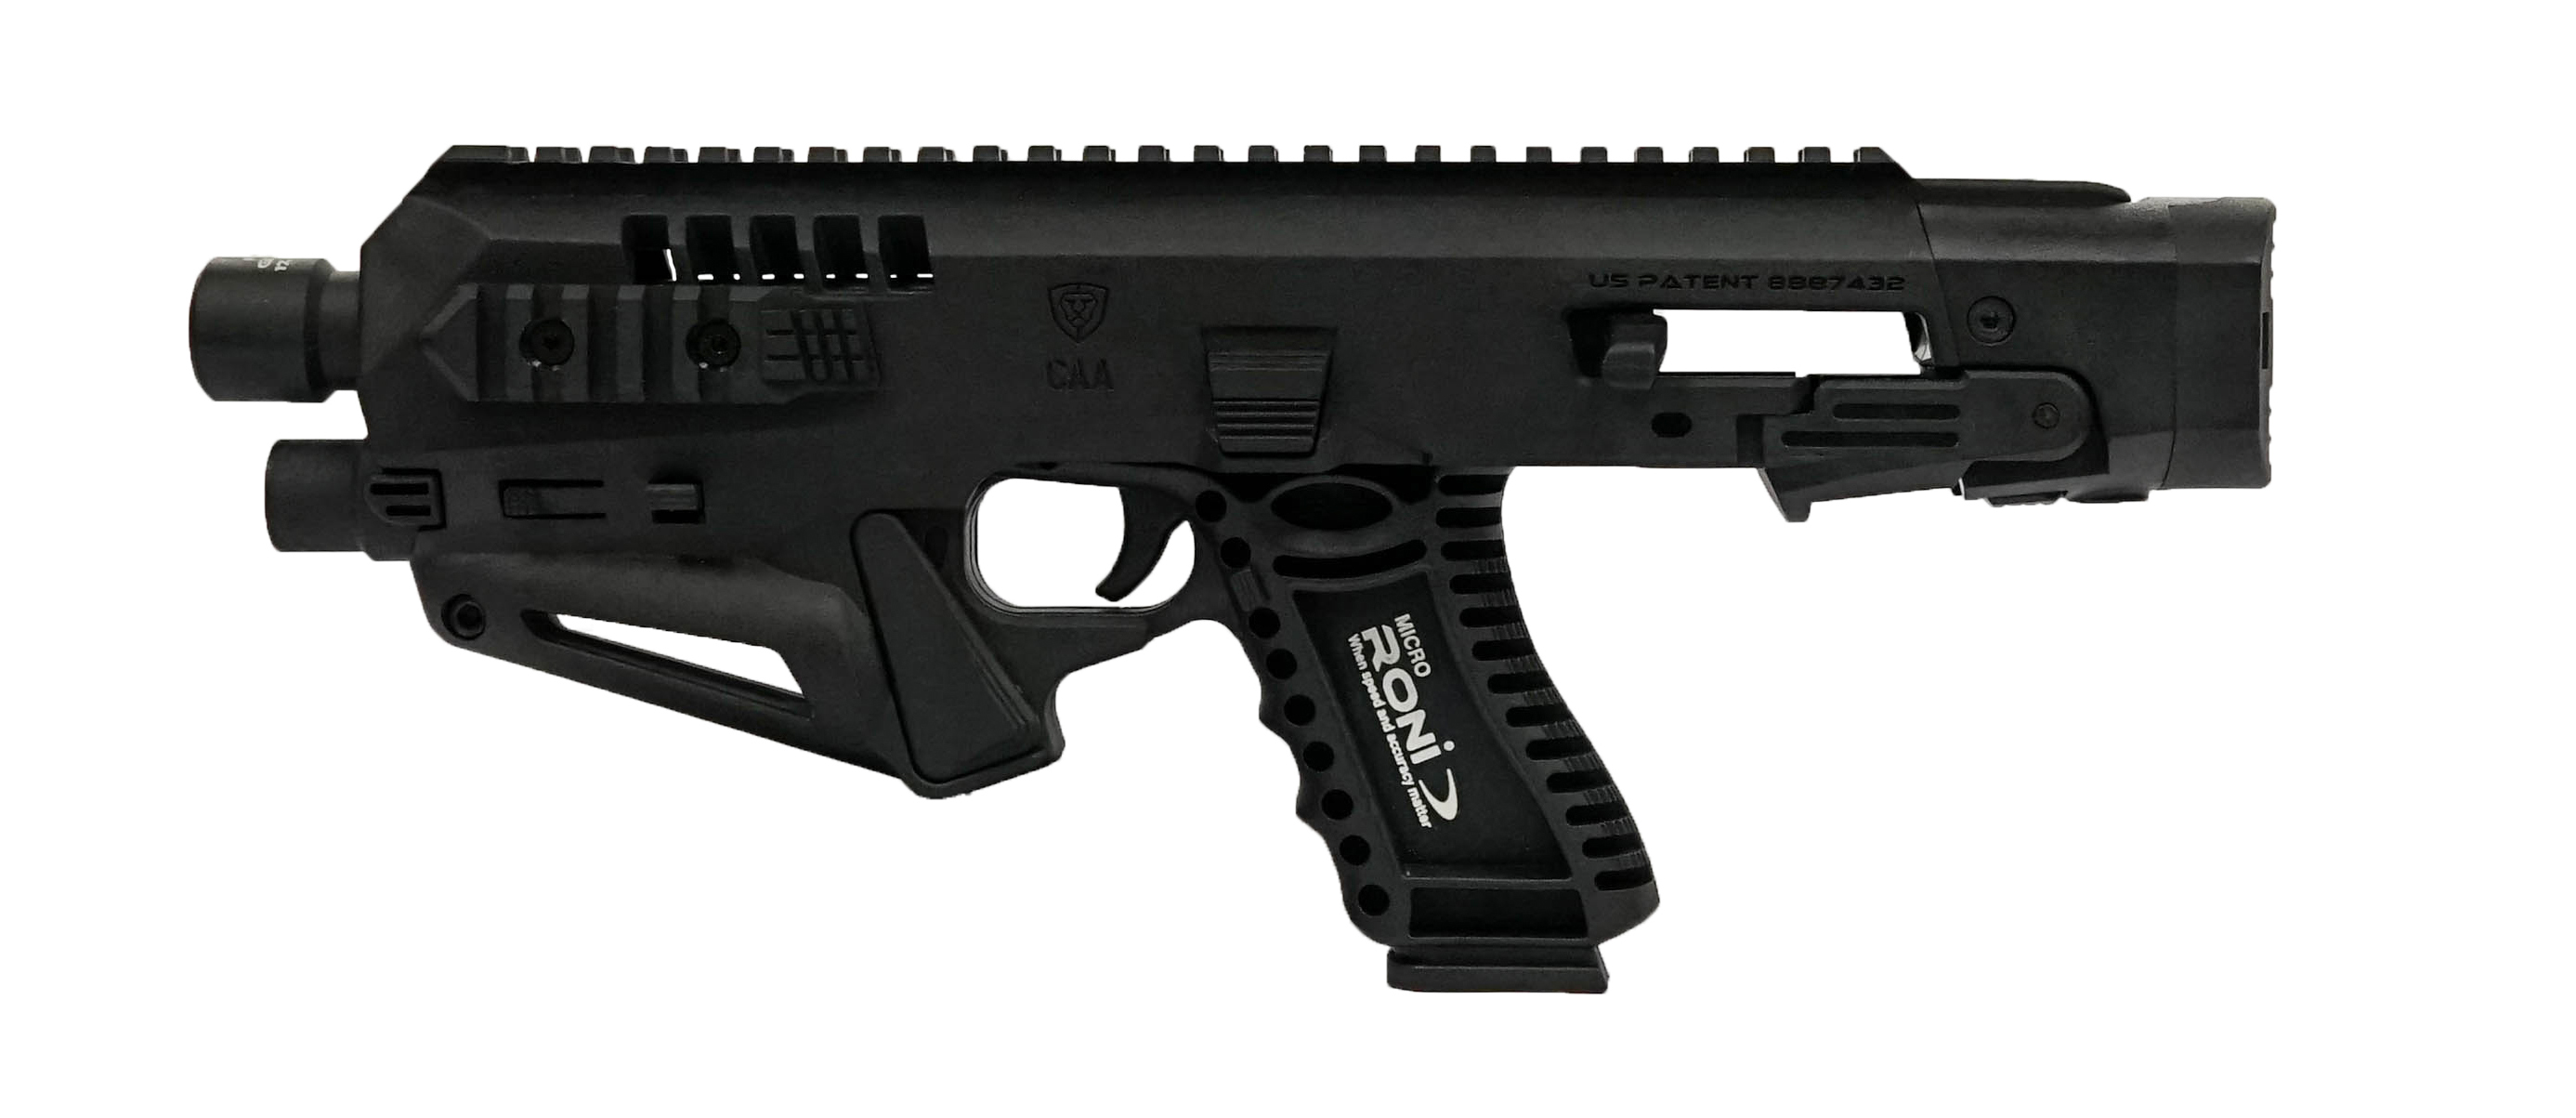 The Micro RONI® Recon Pistol Conversion – All the Benefits, No NFA Paperwork!